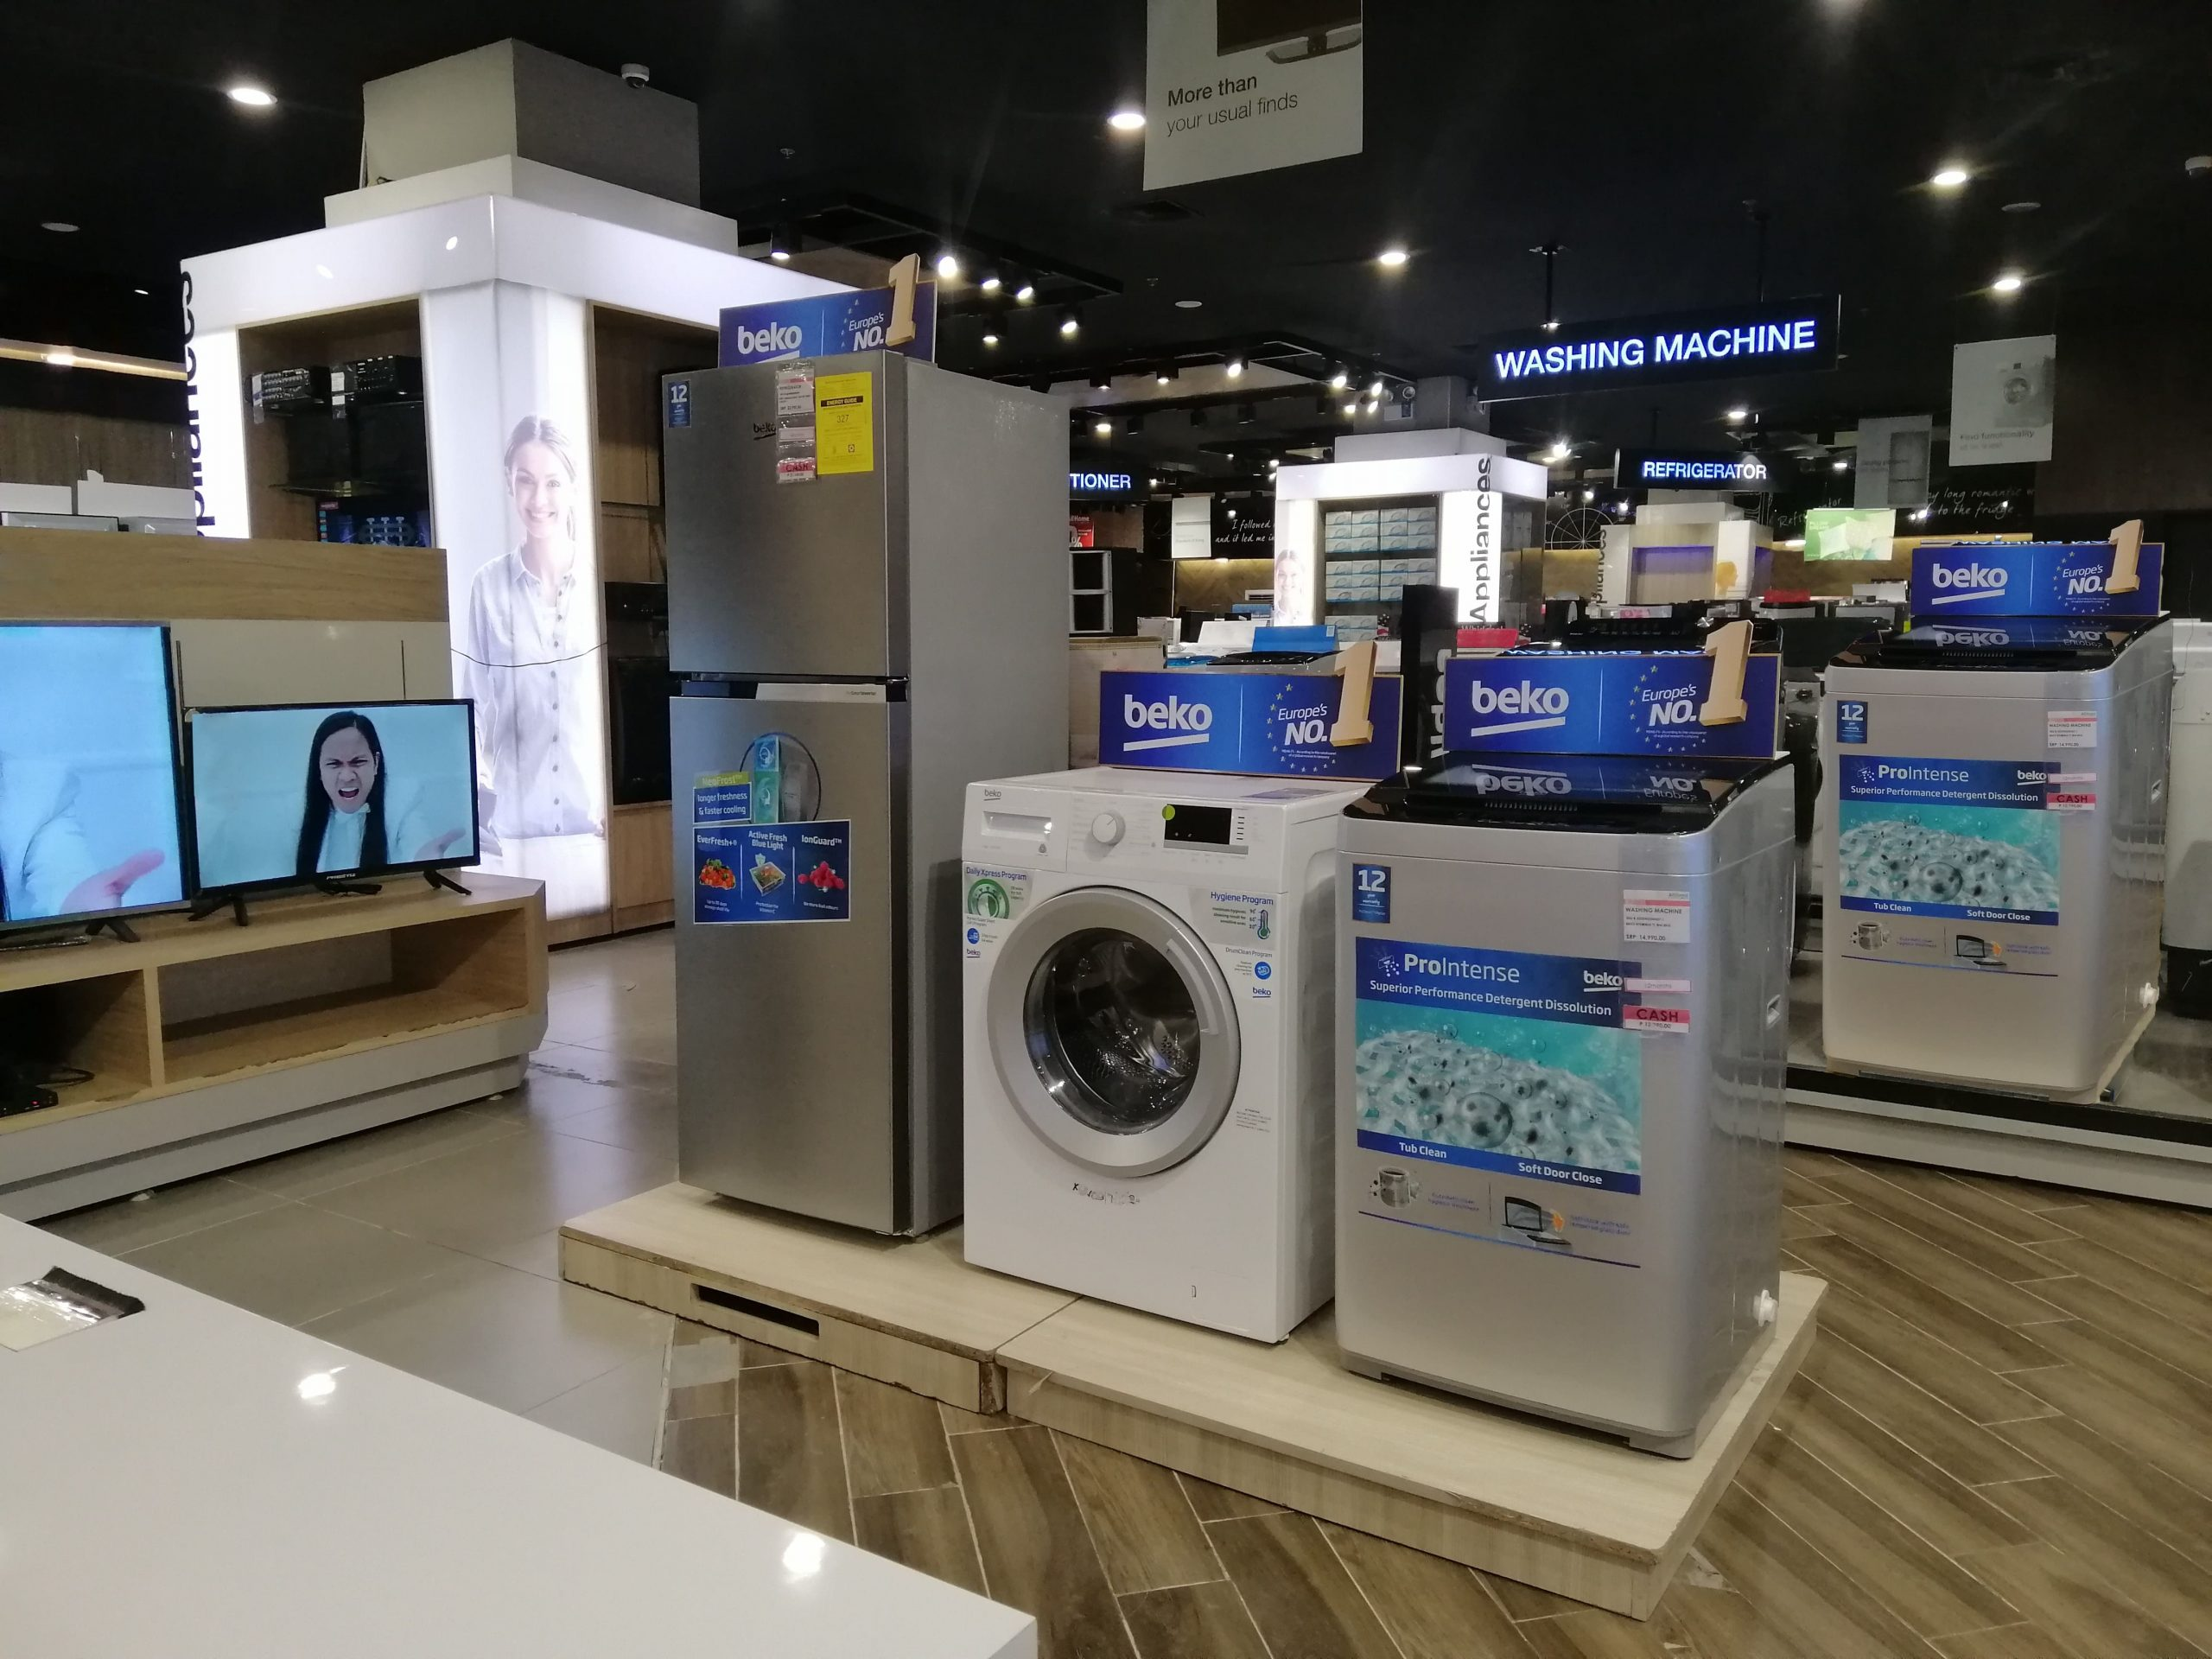 Beko, a European home appliance brand, is now available nationwide